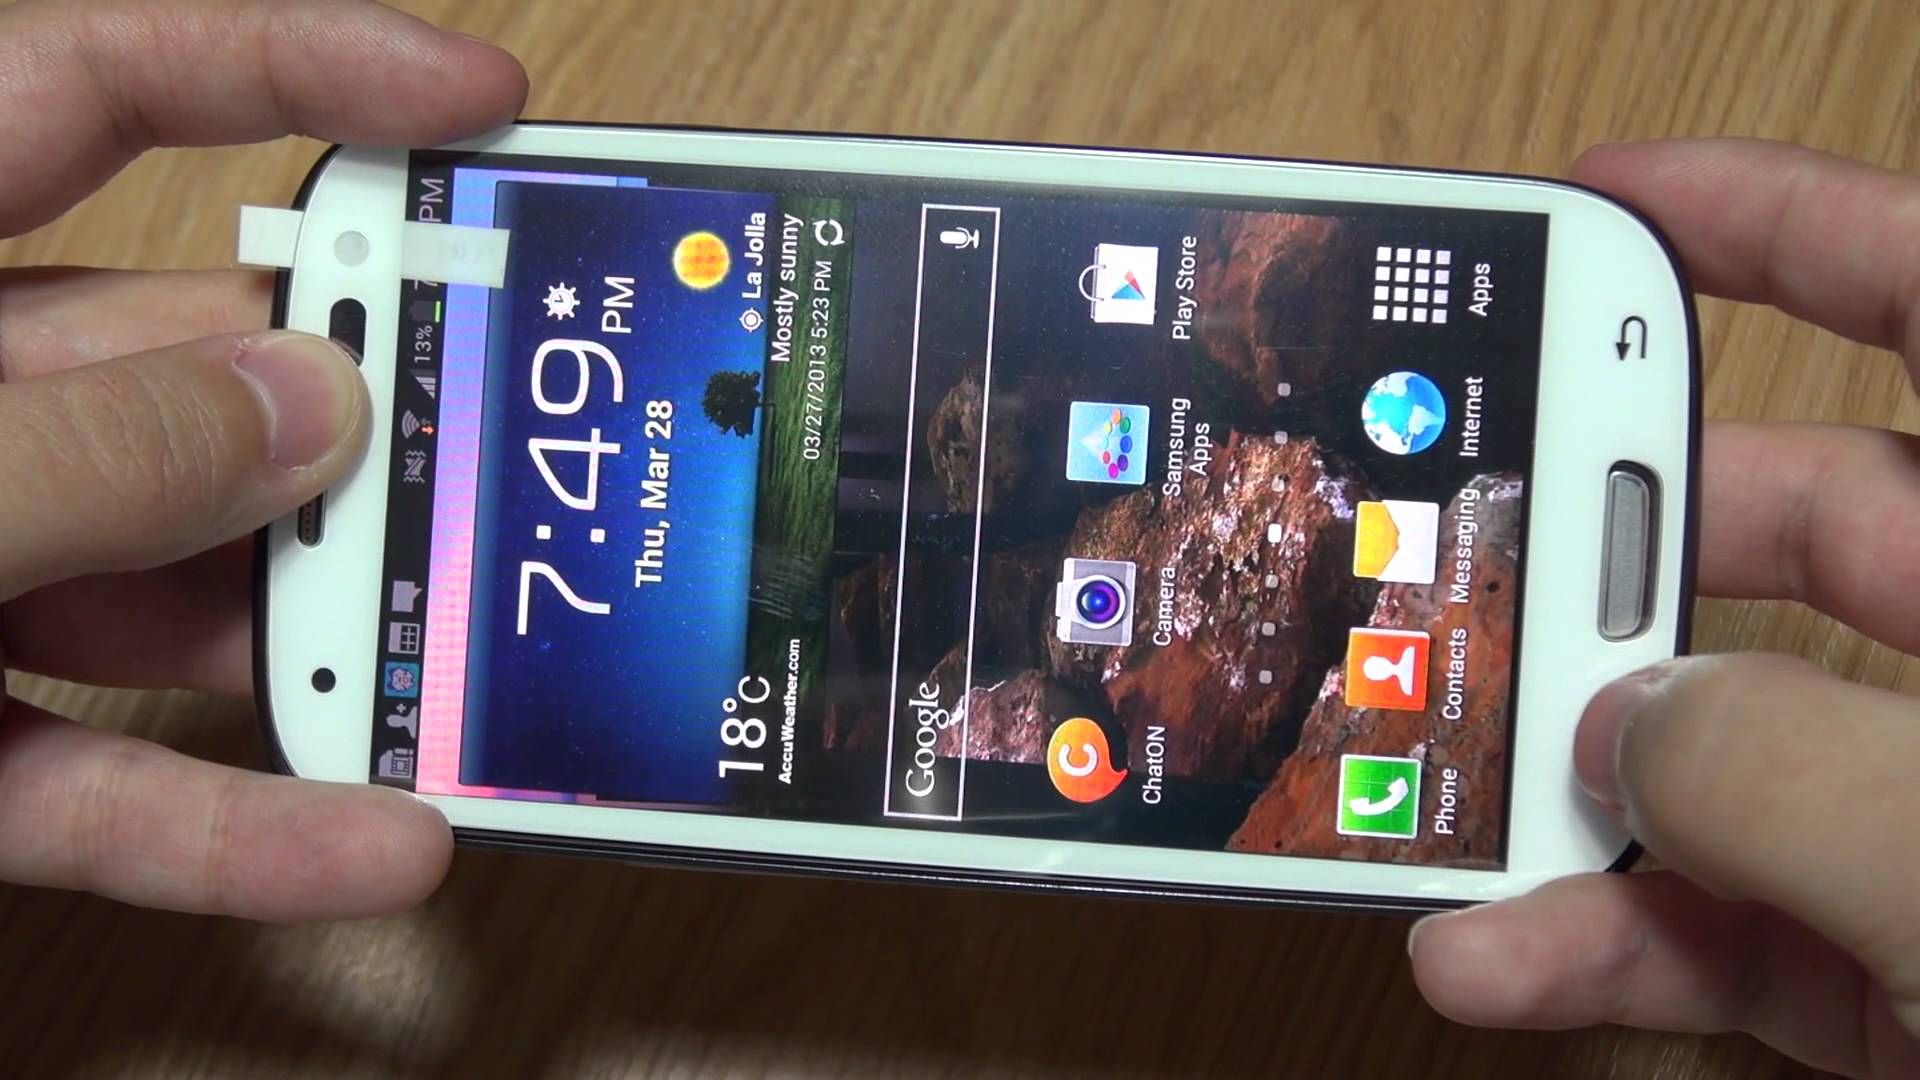 Galaxy S3 iloome ScreenMate Tempered Glass Screen Protector Review